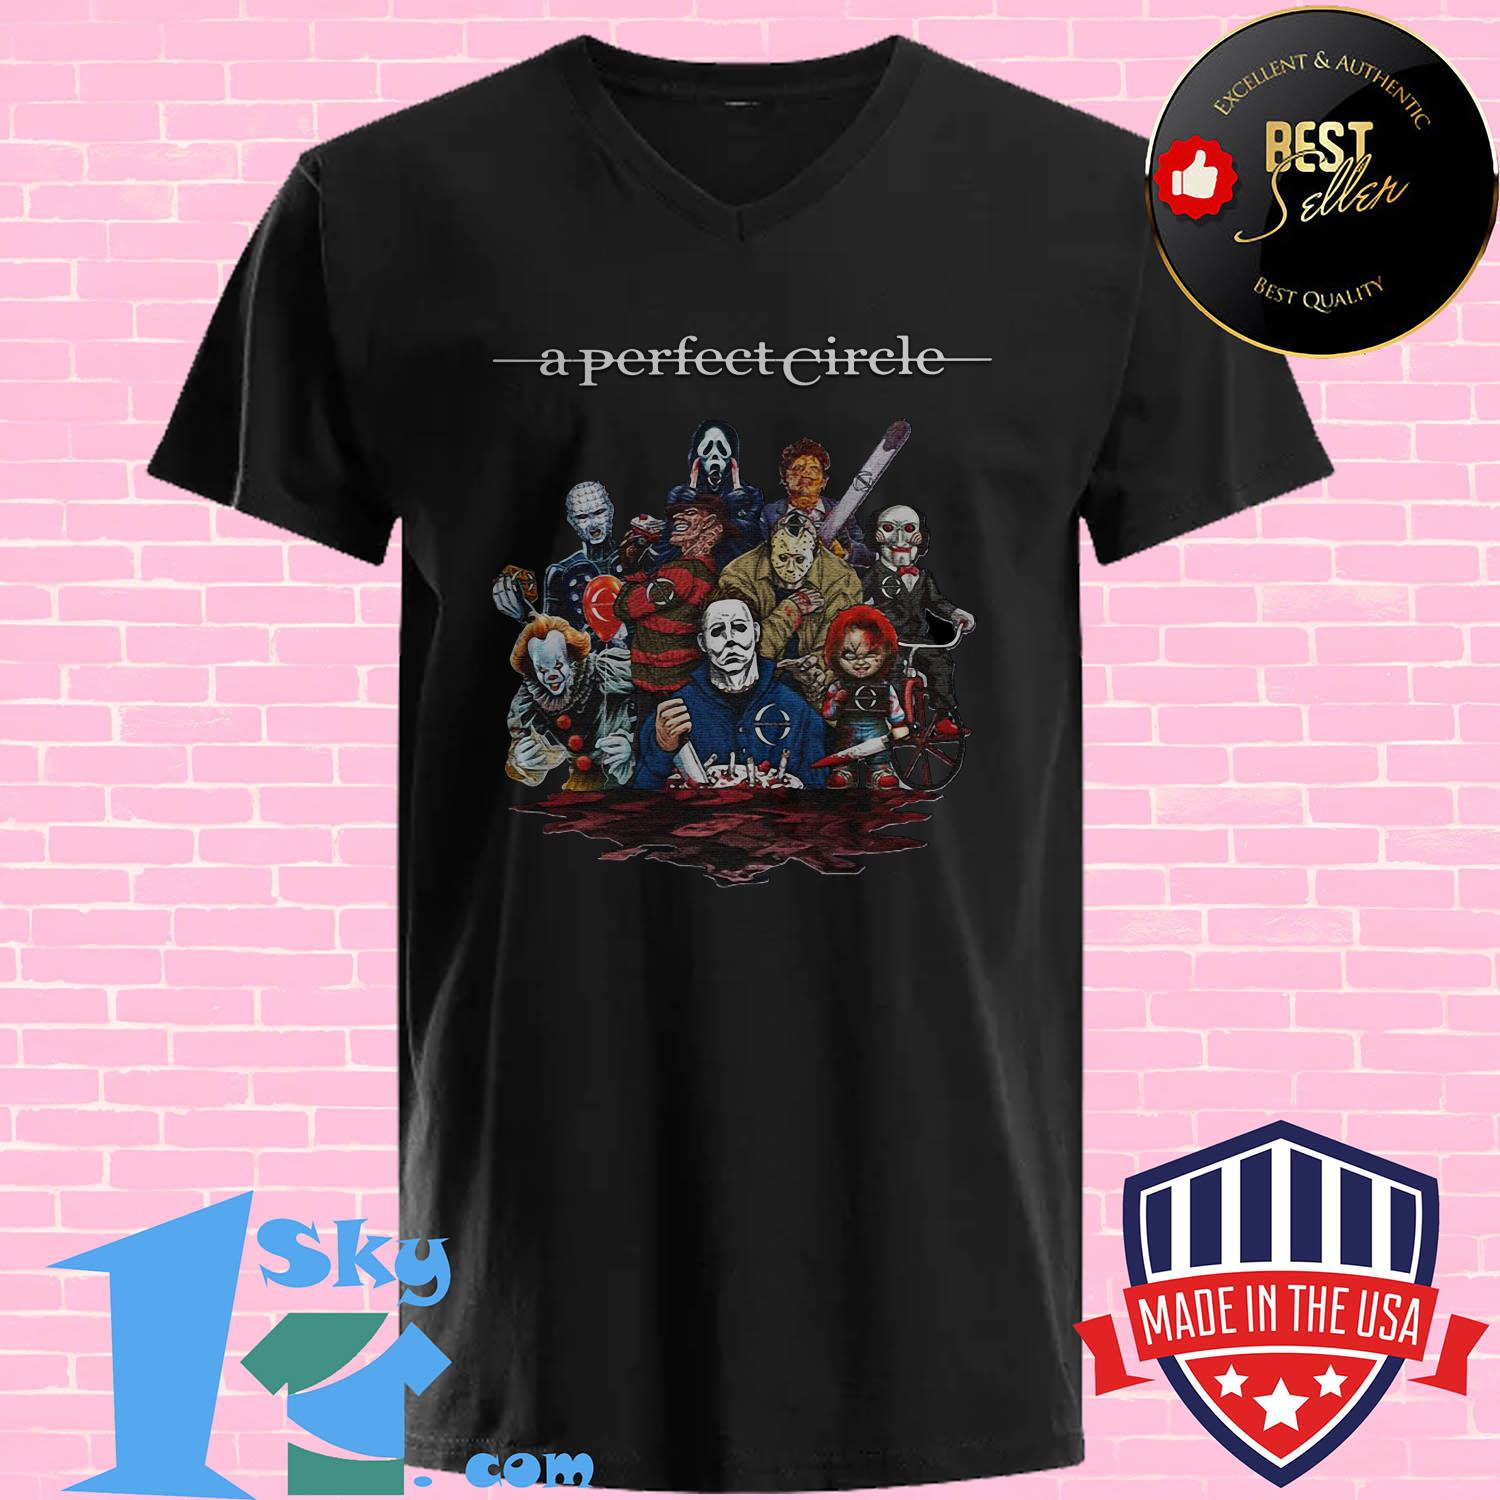 a perfect circle killers characters halloween v neck - A perfect Circle Killers Characters Halloween shirt